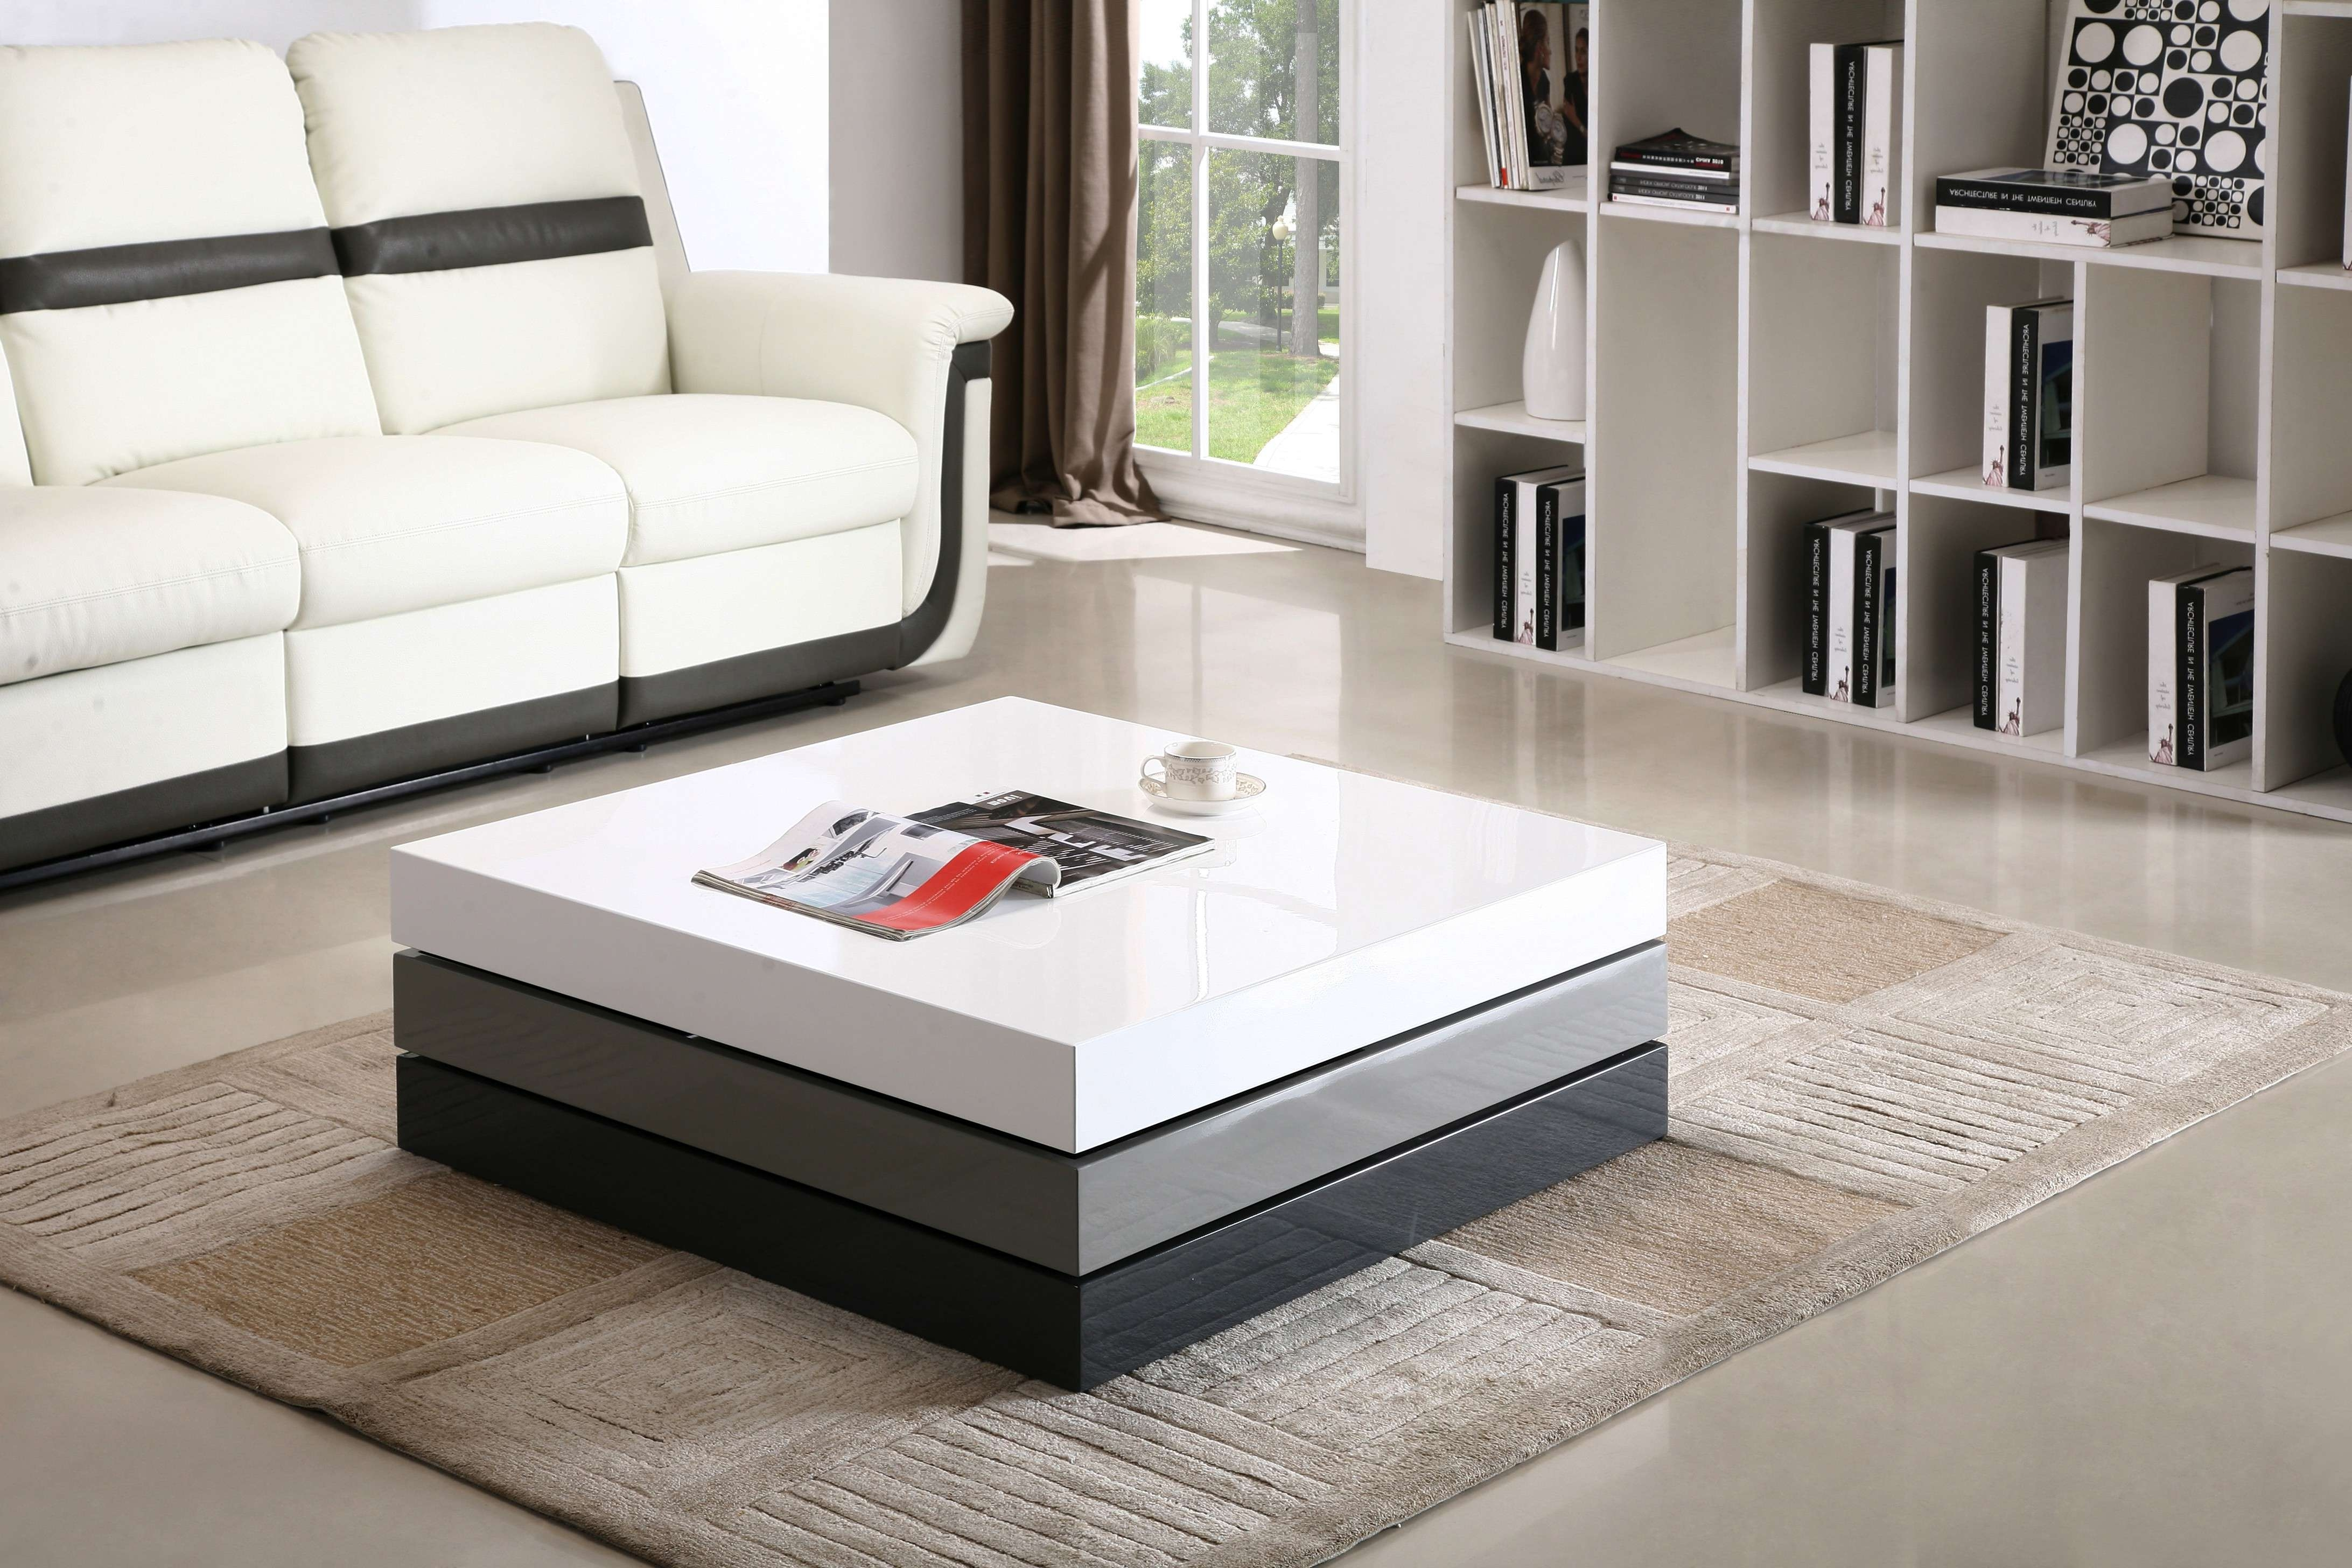 Trendy Modern Coffee Table With Regard To Modern Coffee Tables On Wheels Tags : 79 Incredible Modern Coffee (View 16 of 20)